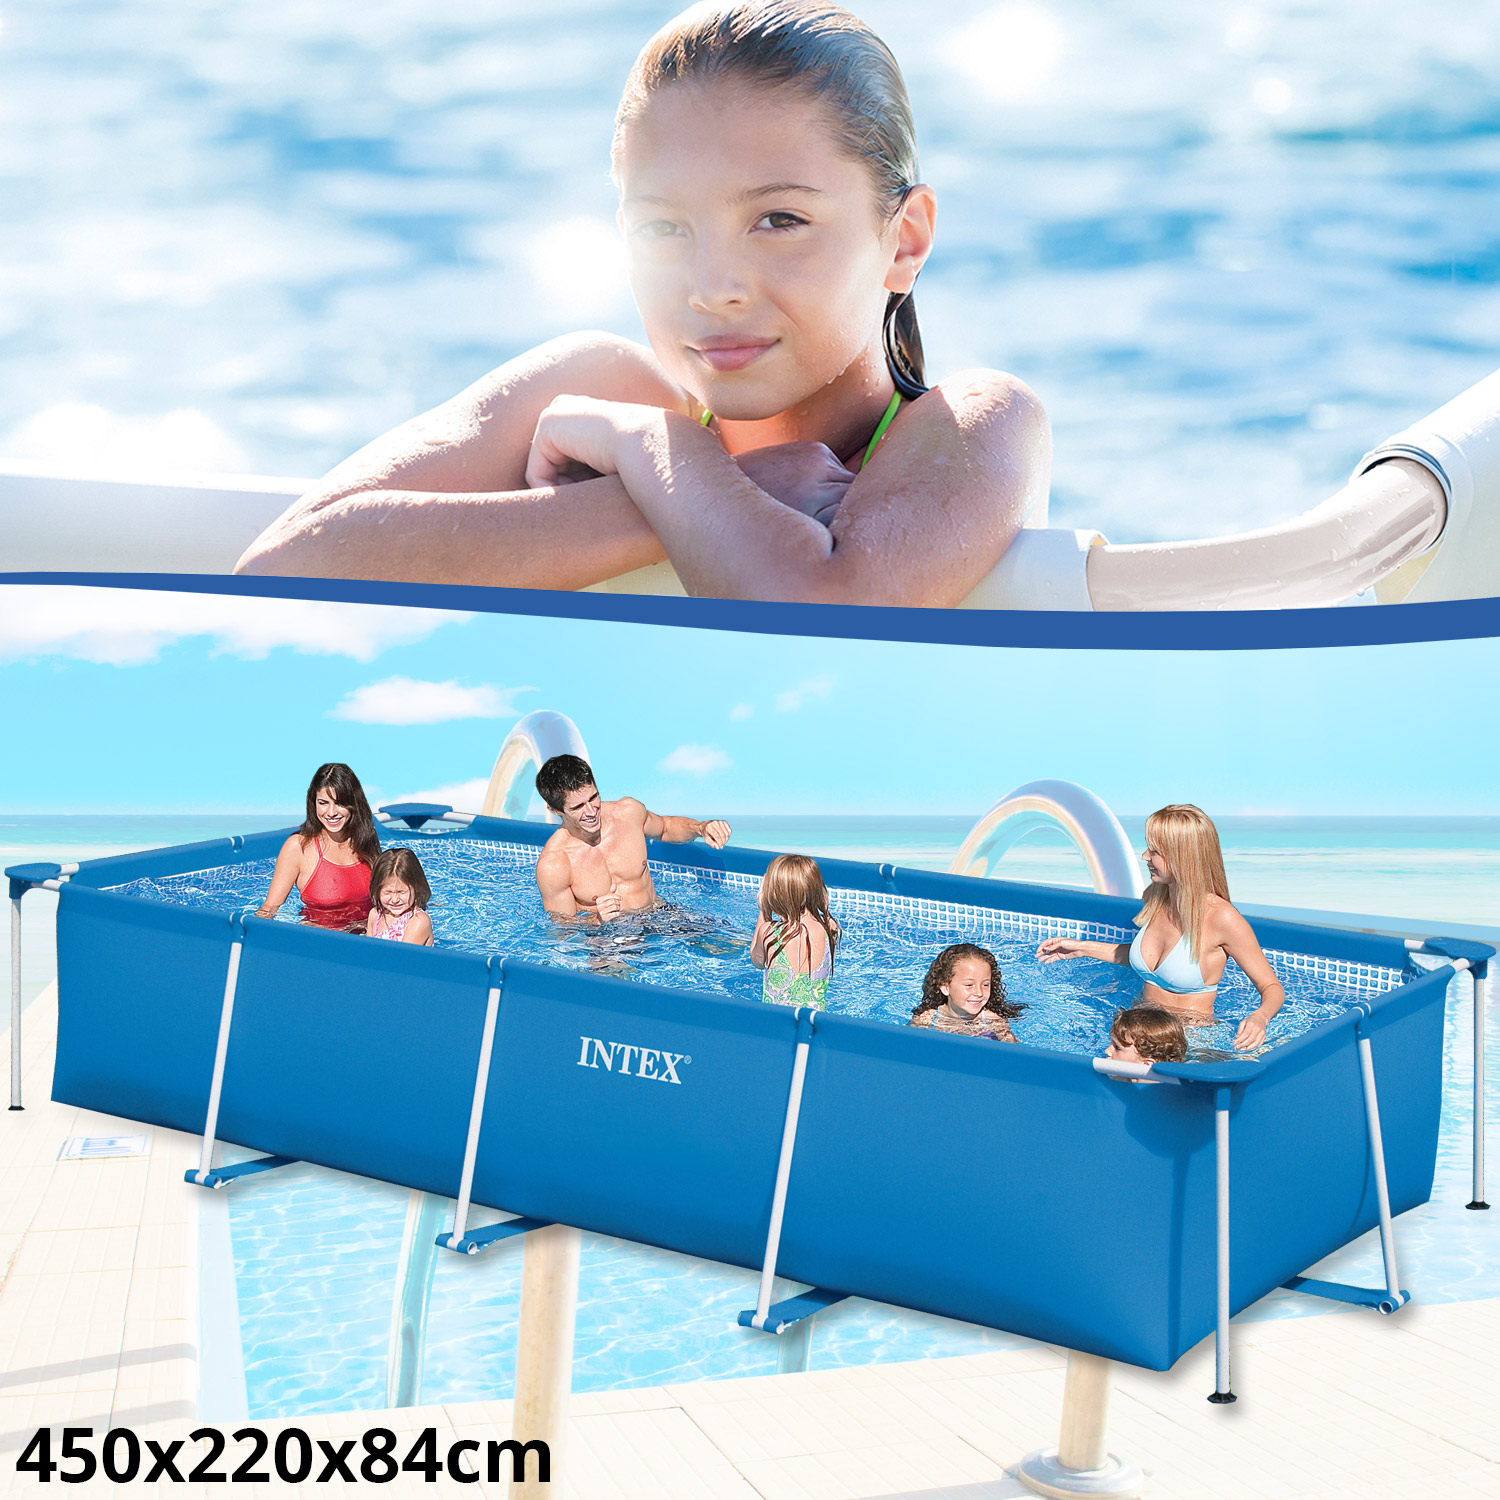 intex family schwimmbad swimming pool familienpool schwimmbecken rechteck frame. Black Bedroom Furniture Sets. Home Design Ideas